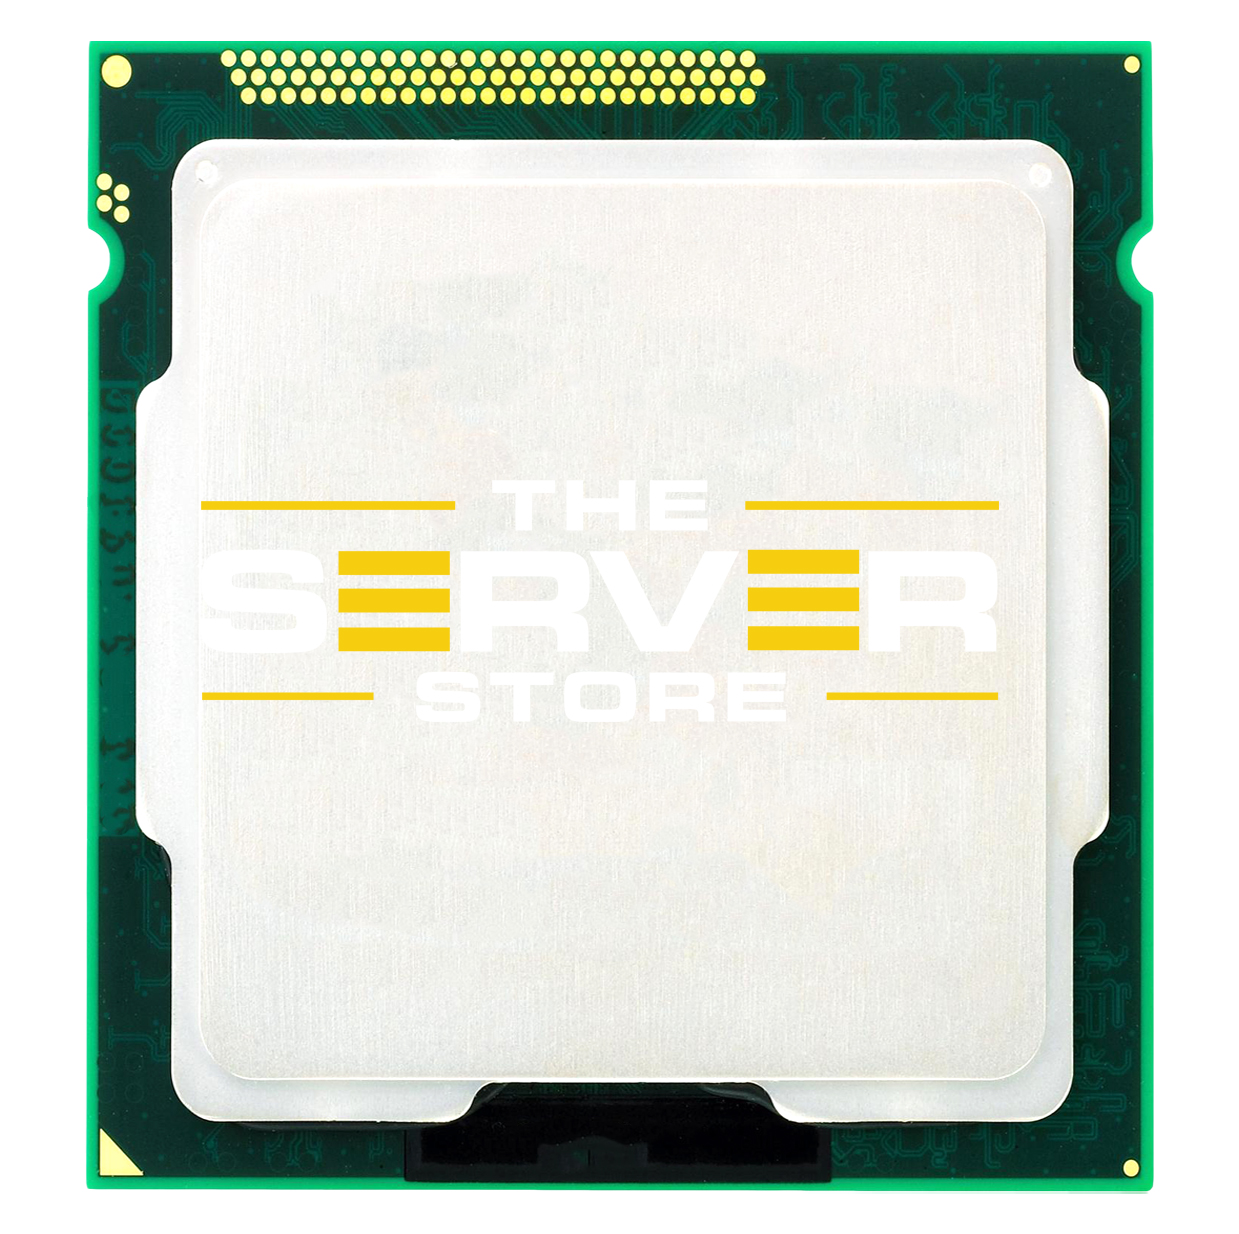 Intel Xeon E5-2620 2.0GHz 6-Core Processors